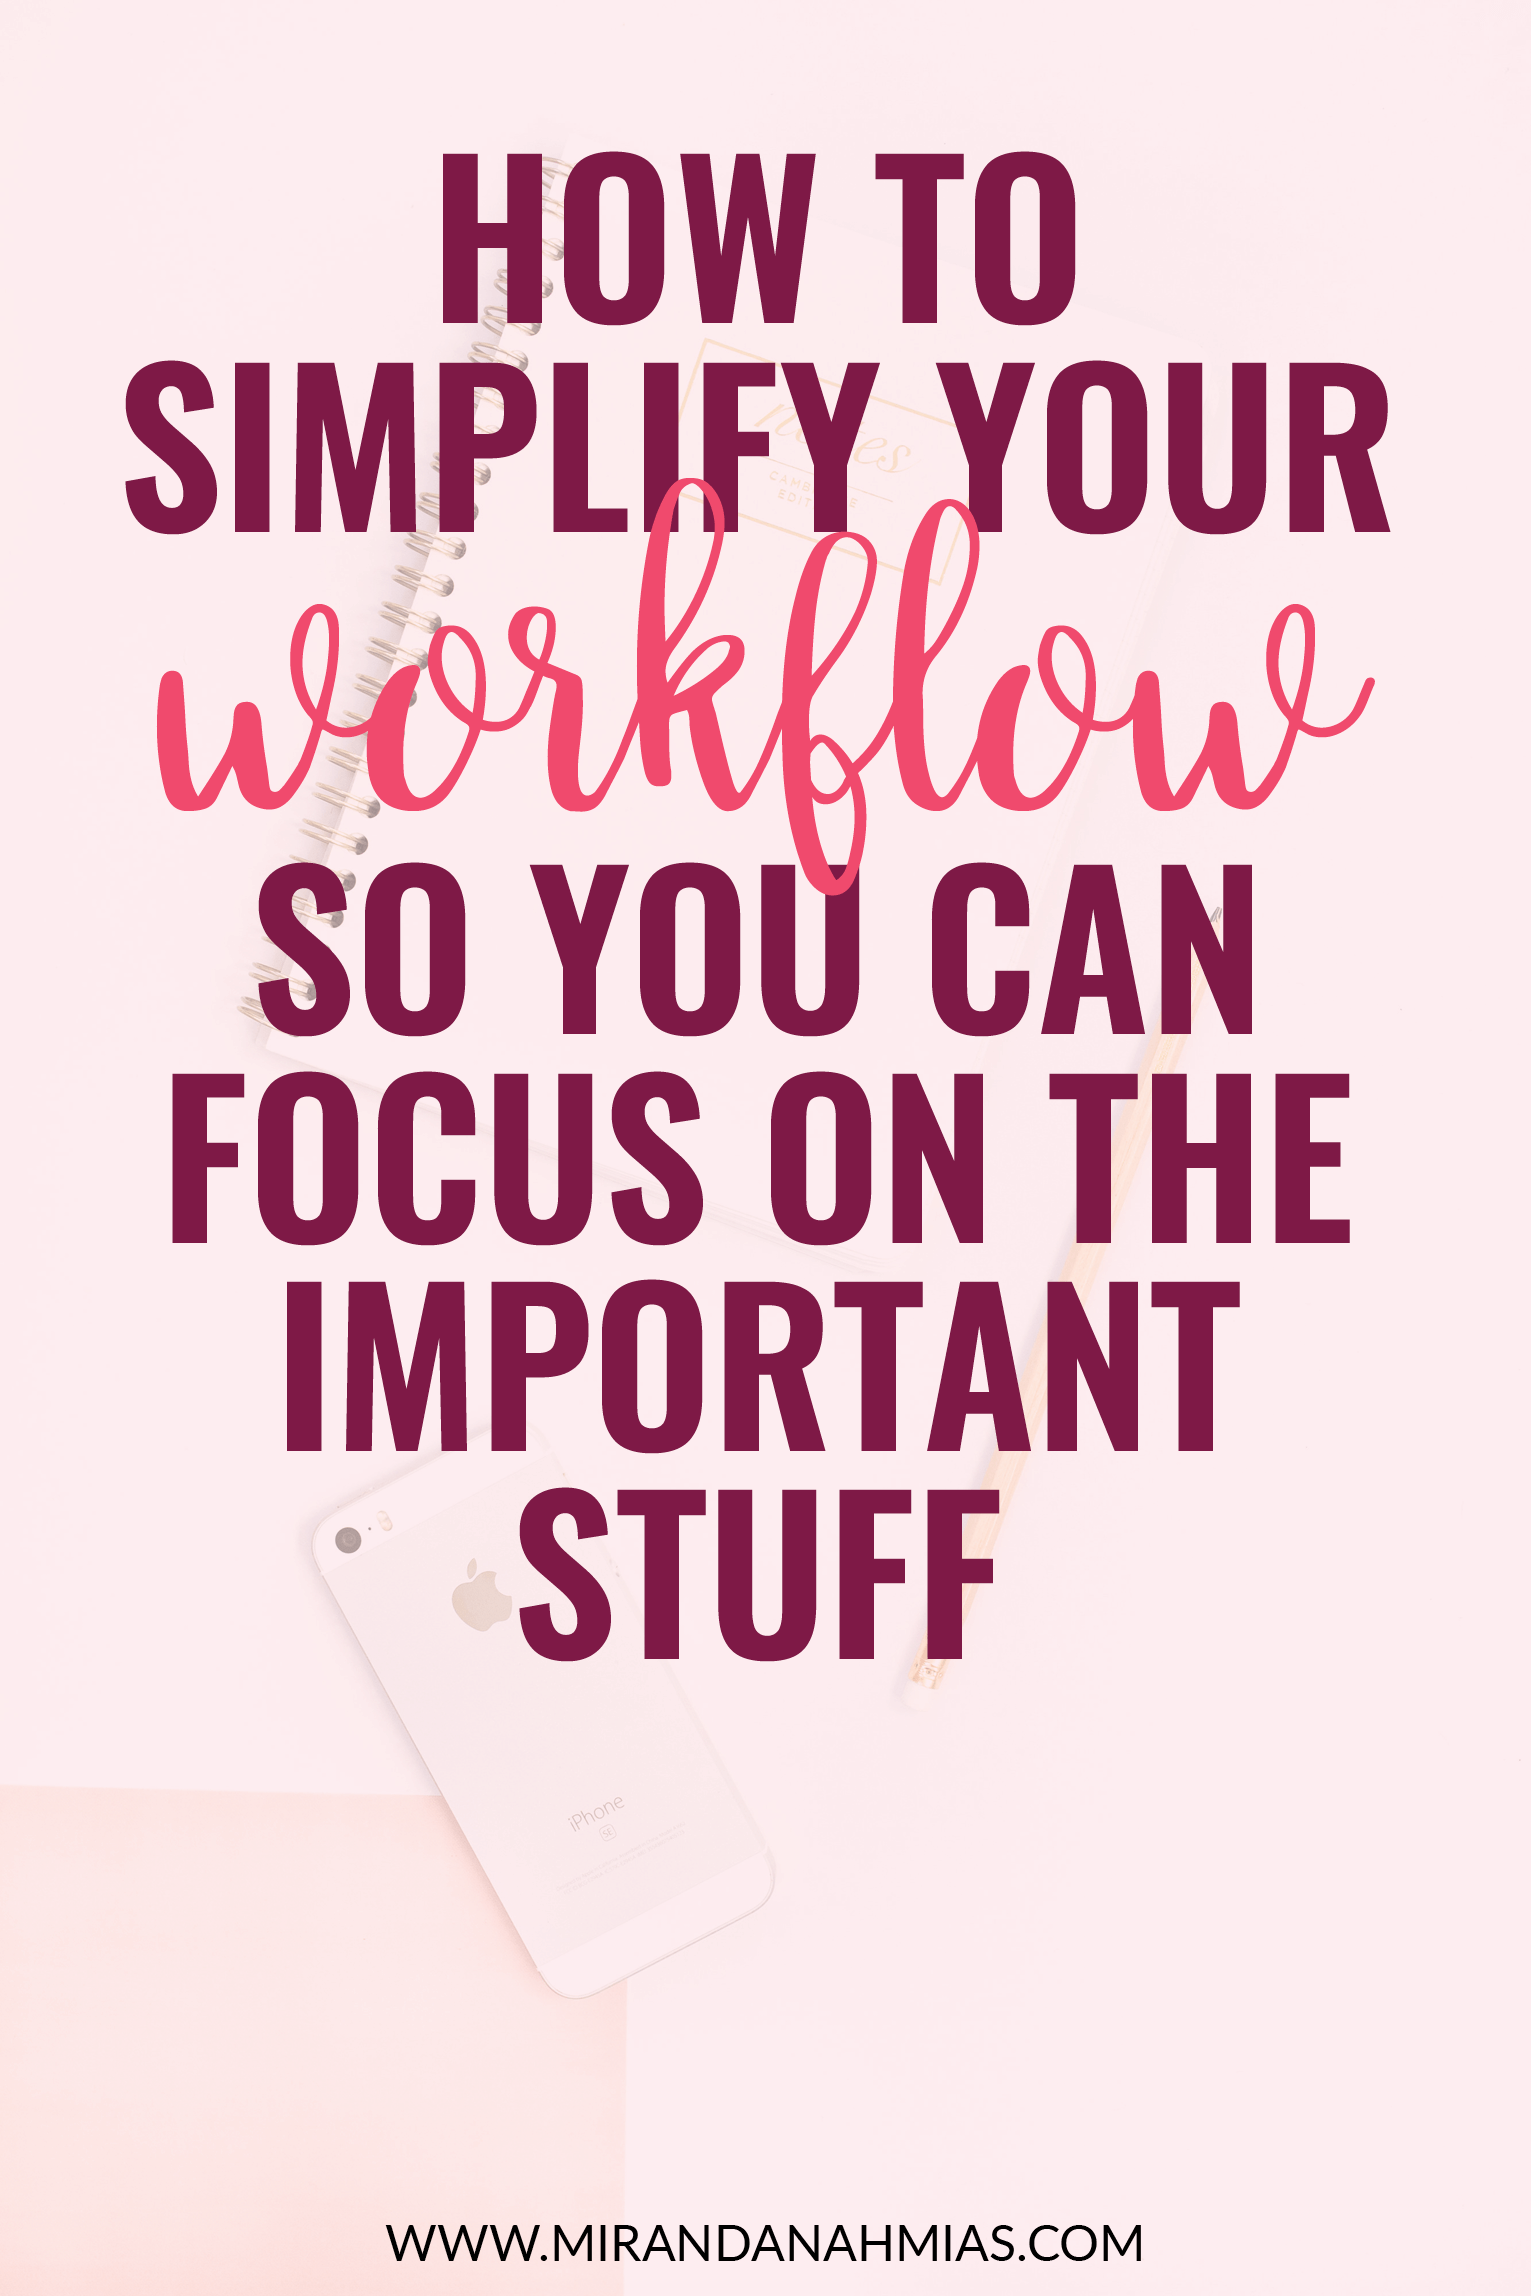 How to Simplify Your Workflow So You Can Focus on the Important Stuff // Miranda Nahmias